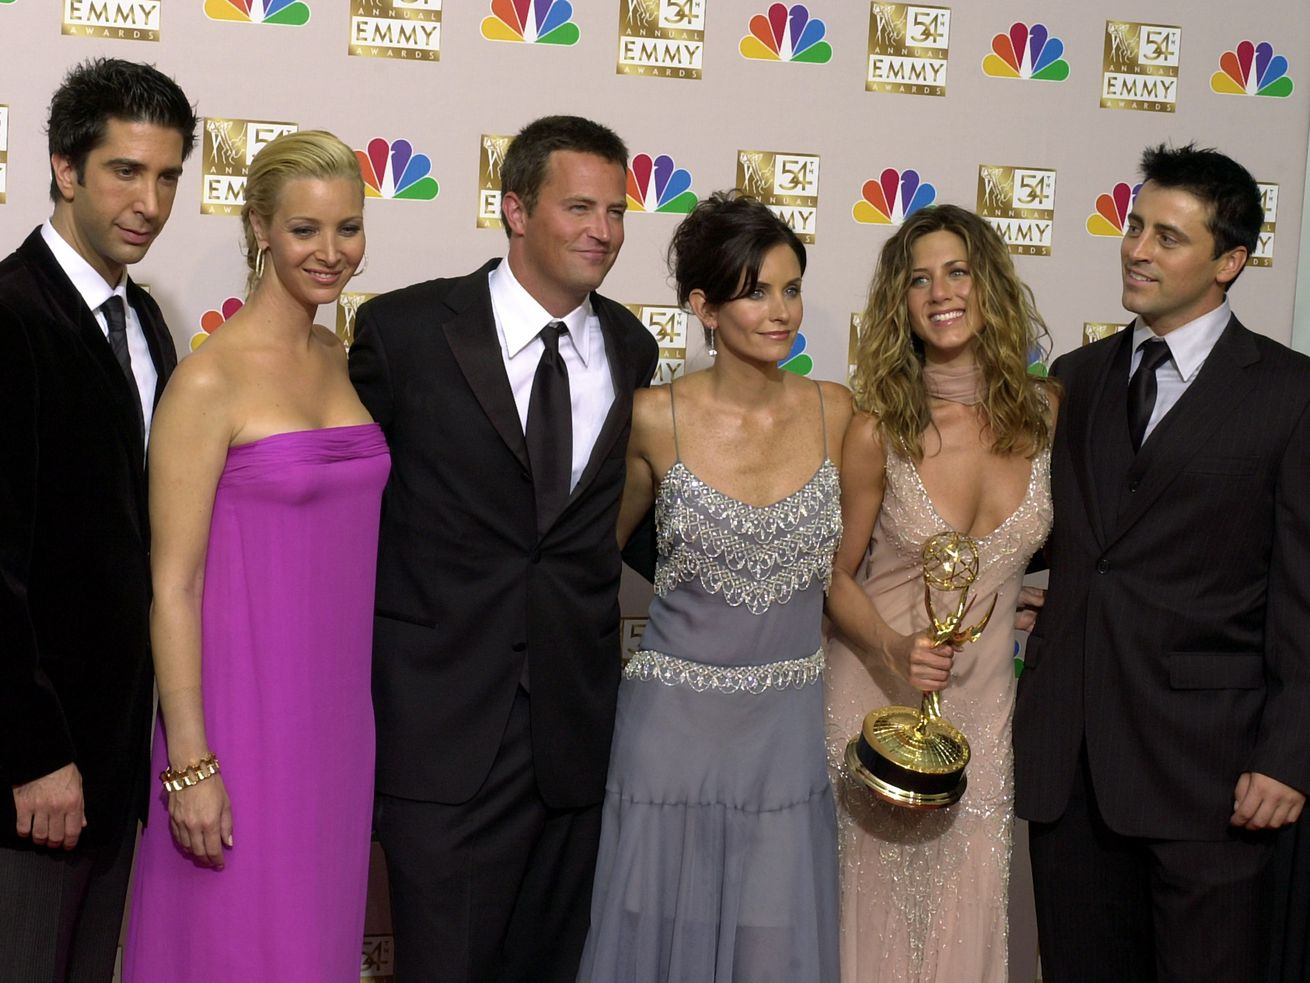 'Friends' comes to the big screen for 25th anniversary